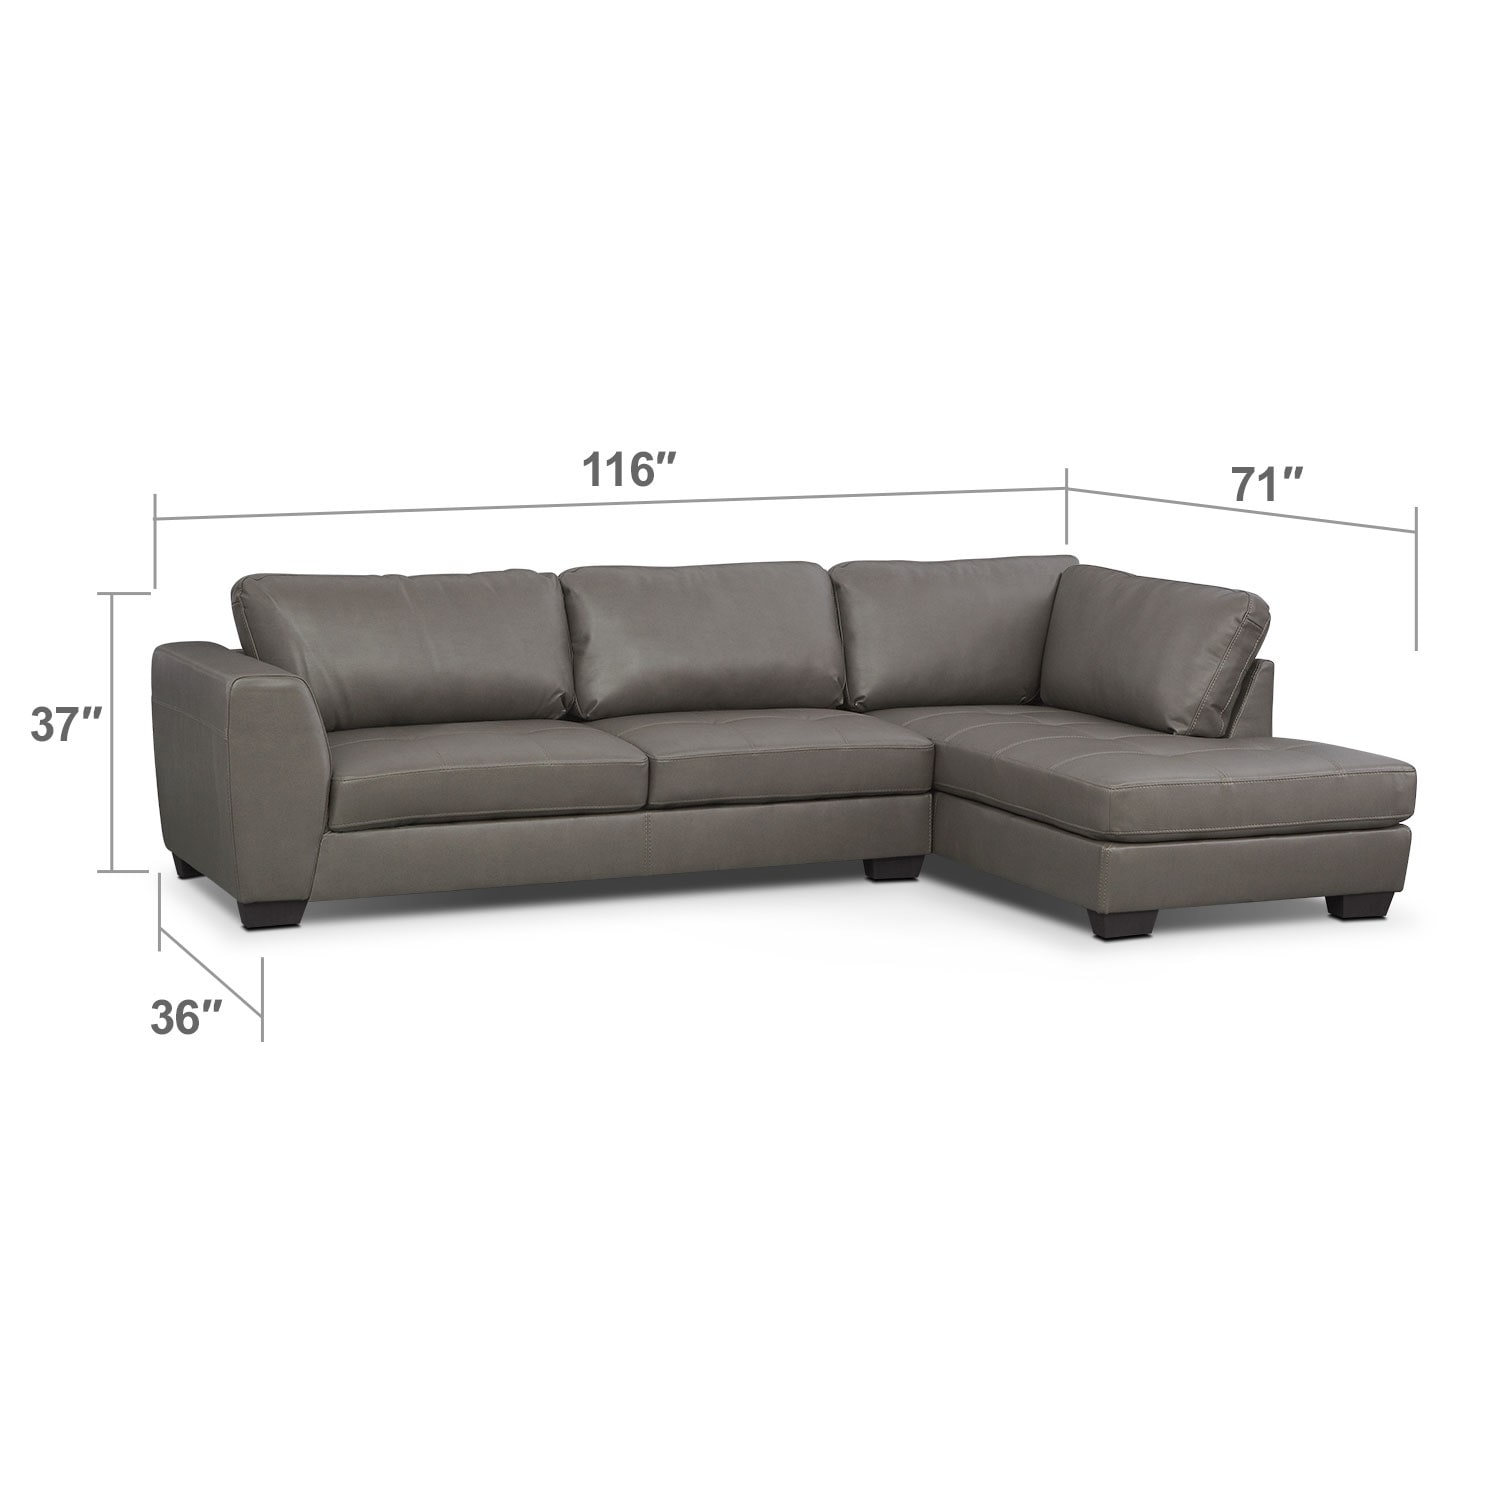 Living Room Furniture - Lyon Gray 2 Pc. Sectional (Reverse)